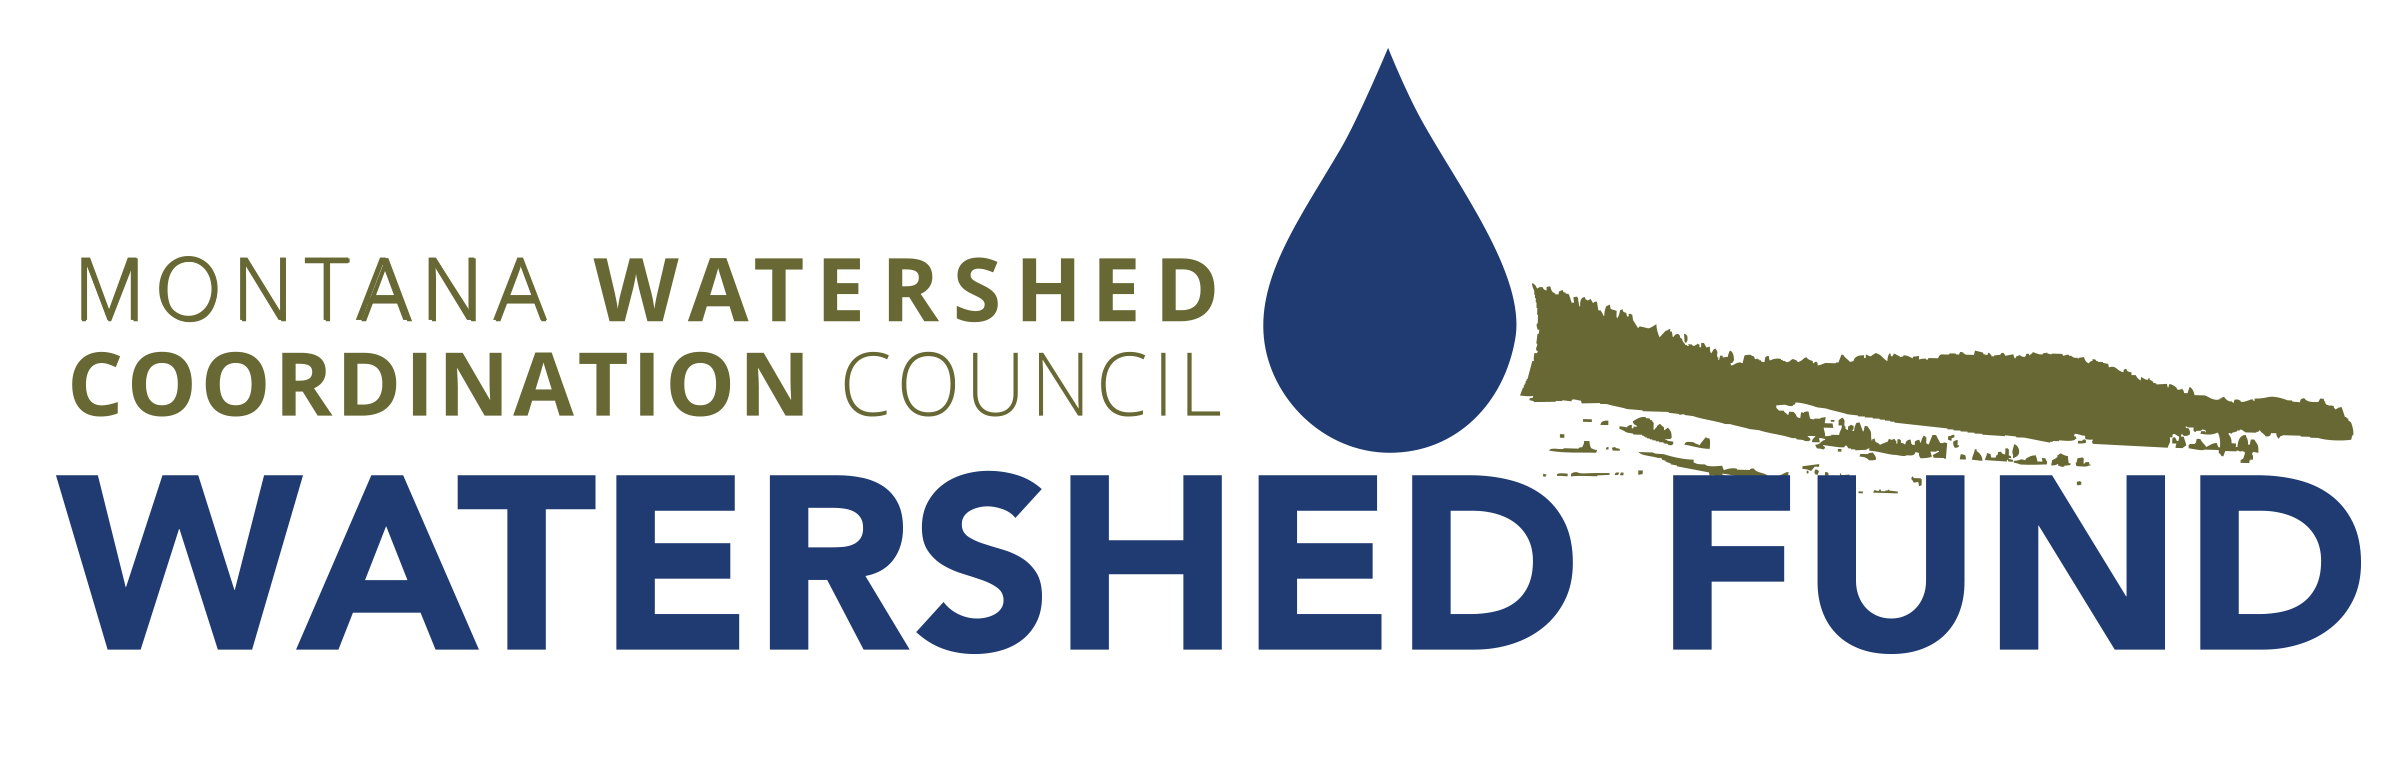 MWCC Watershed Fund